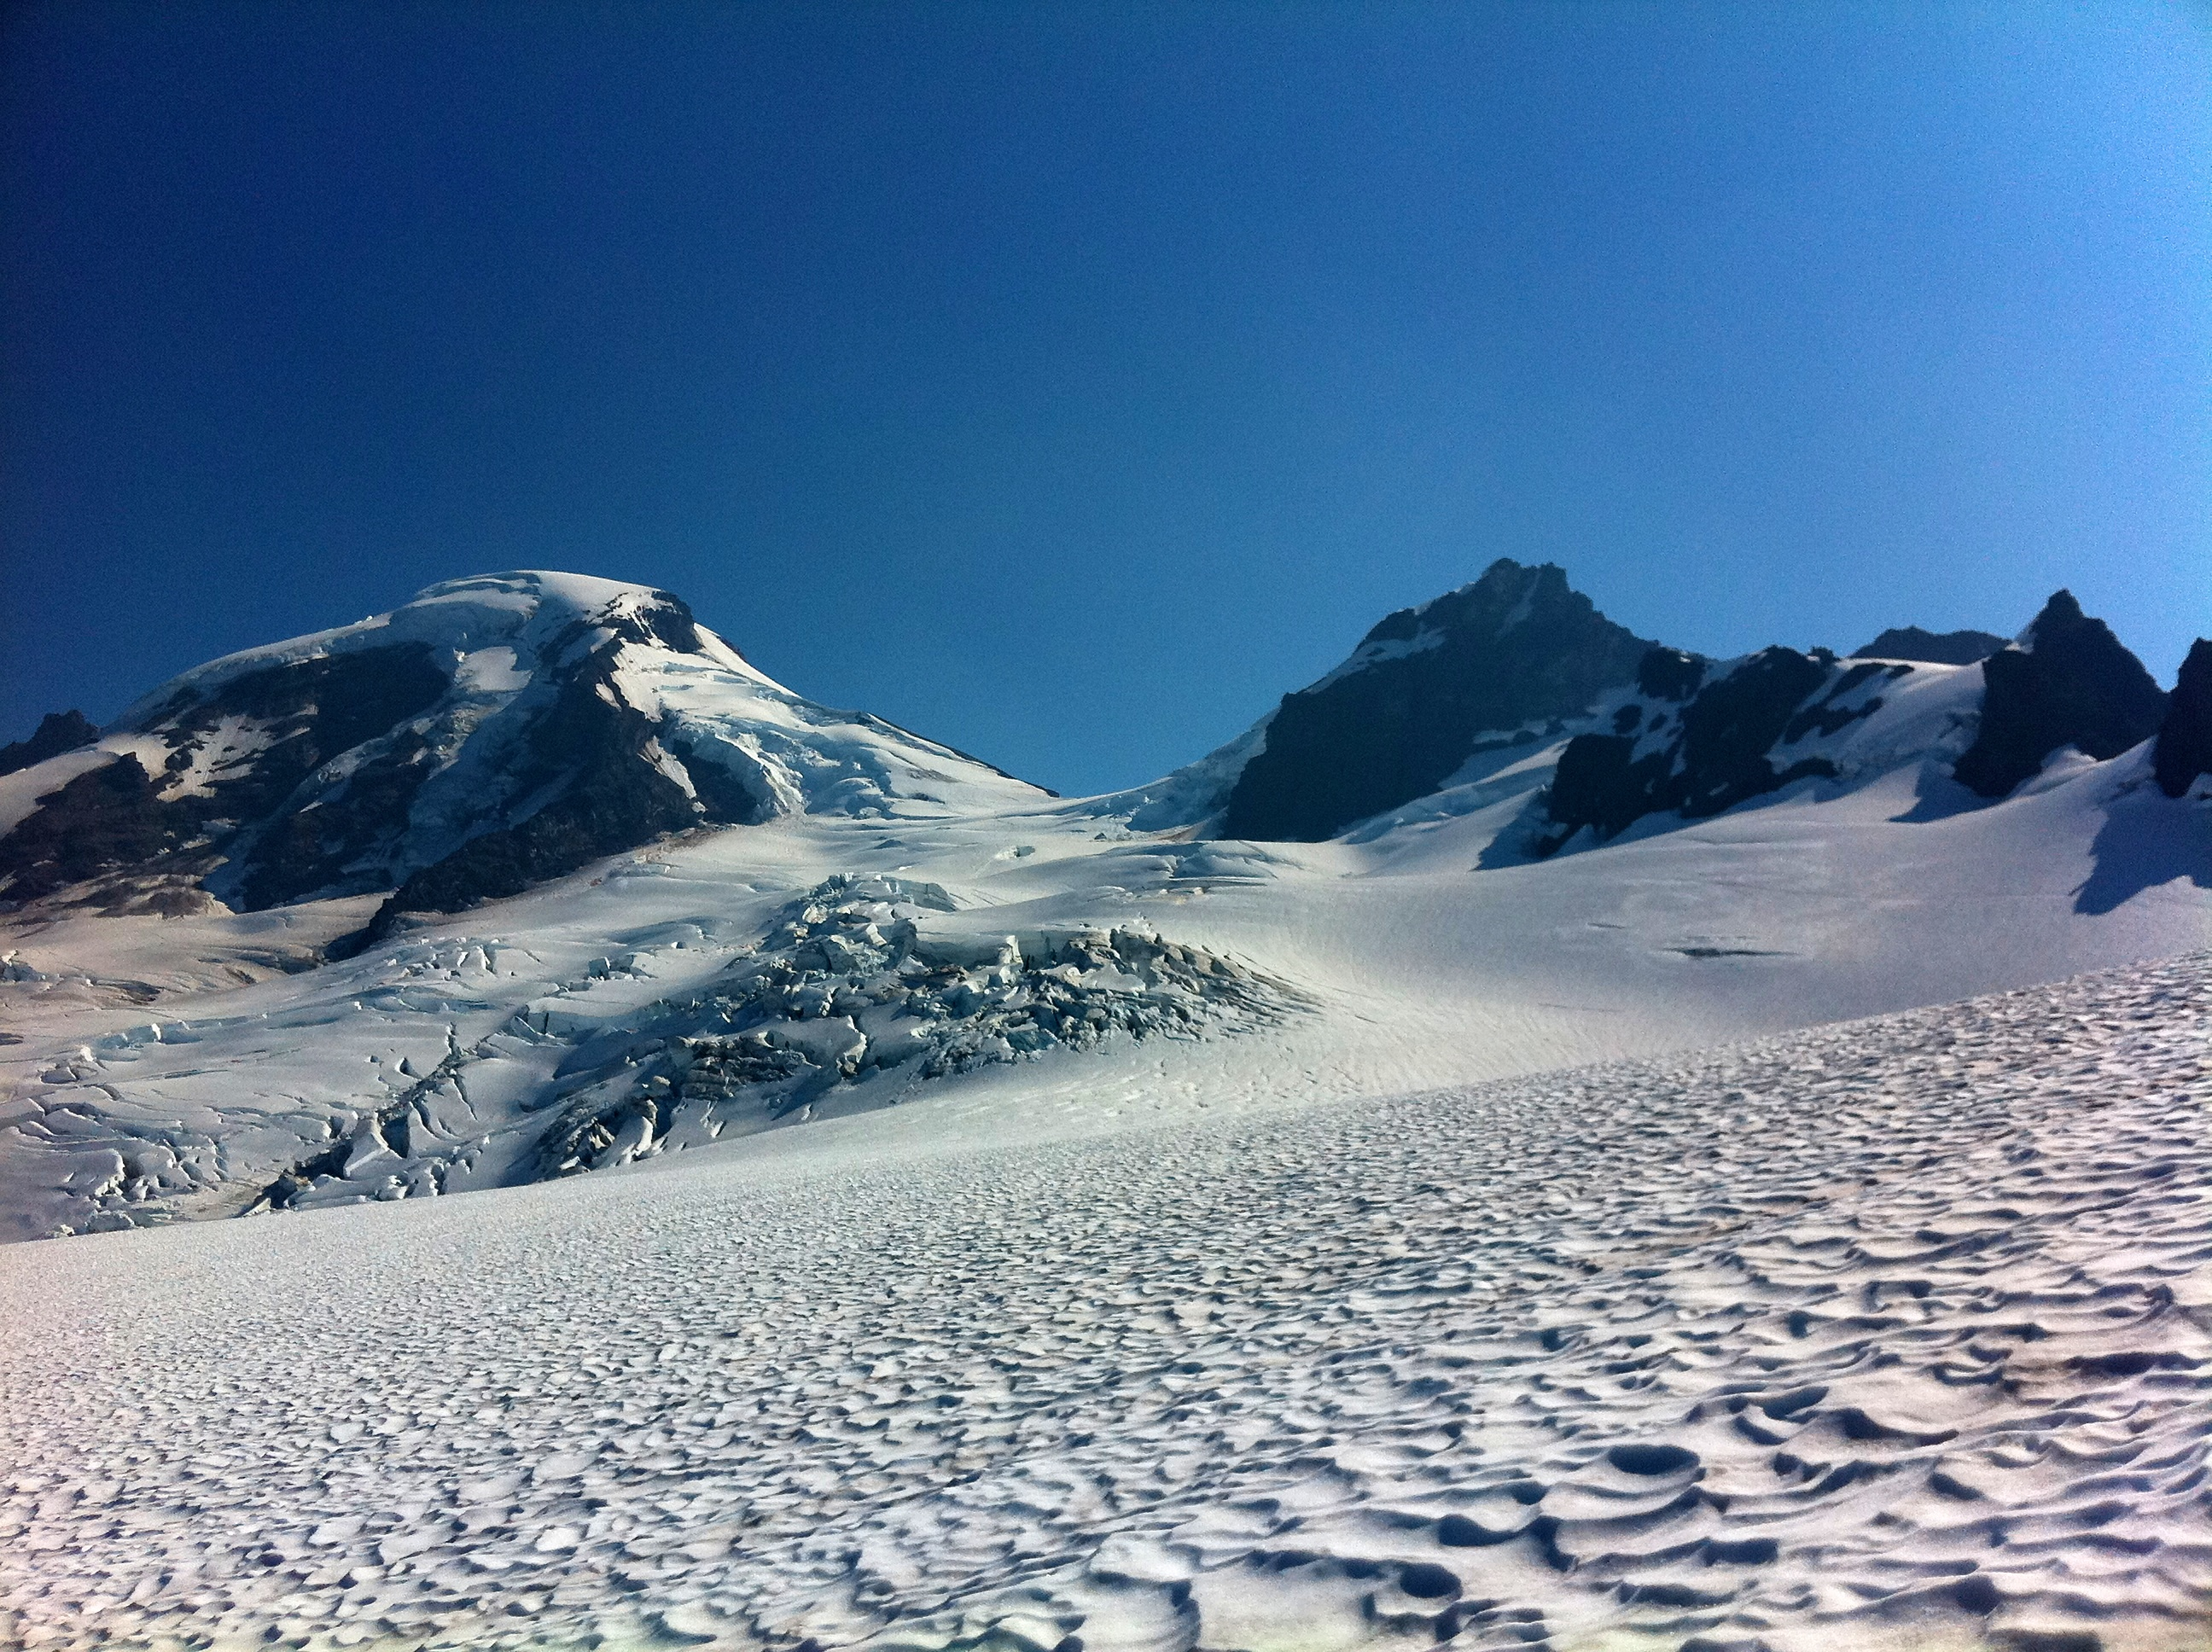 Mt Baker Ski Area, photo by McKay Savage via Flickr Creative Commons